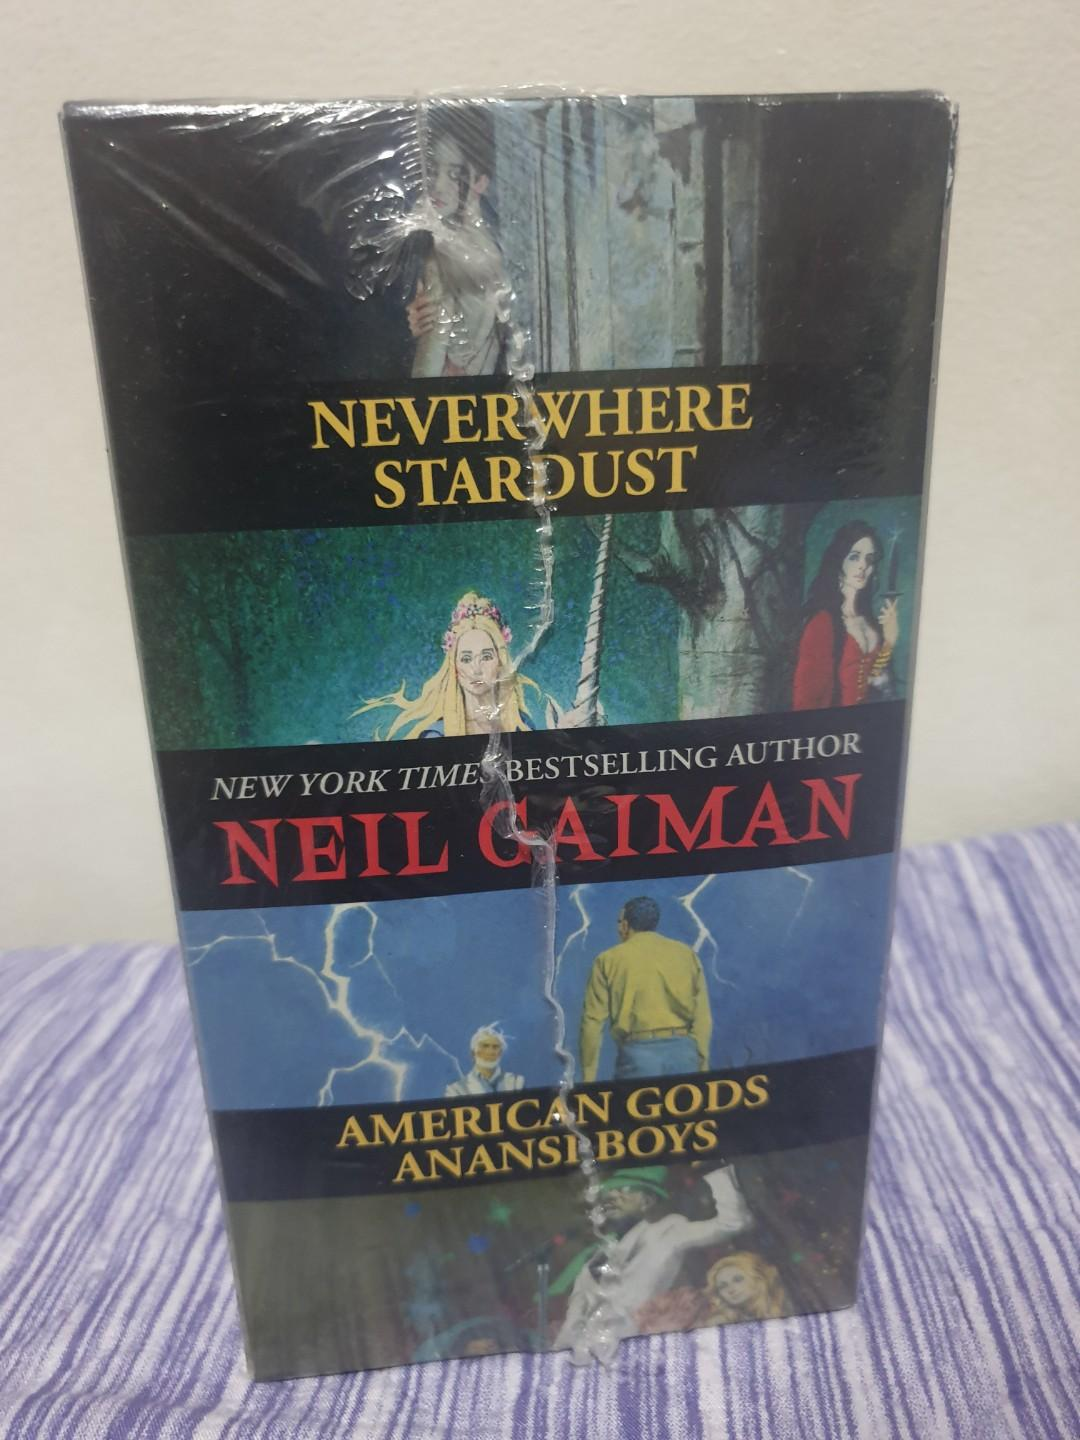 Neil Gaiman's exclusive boxed set - Stardust, Neverwhere, Anansi Boys and American Gods